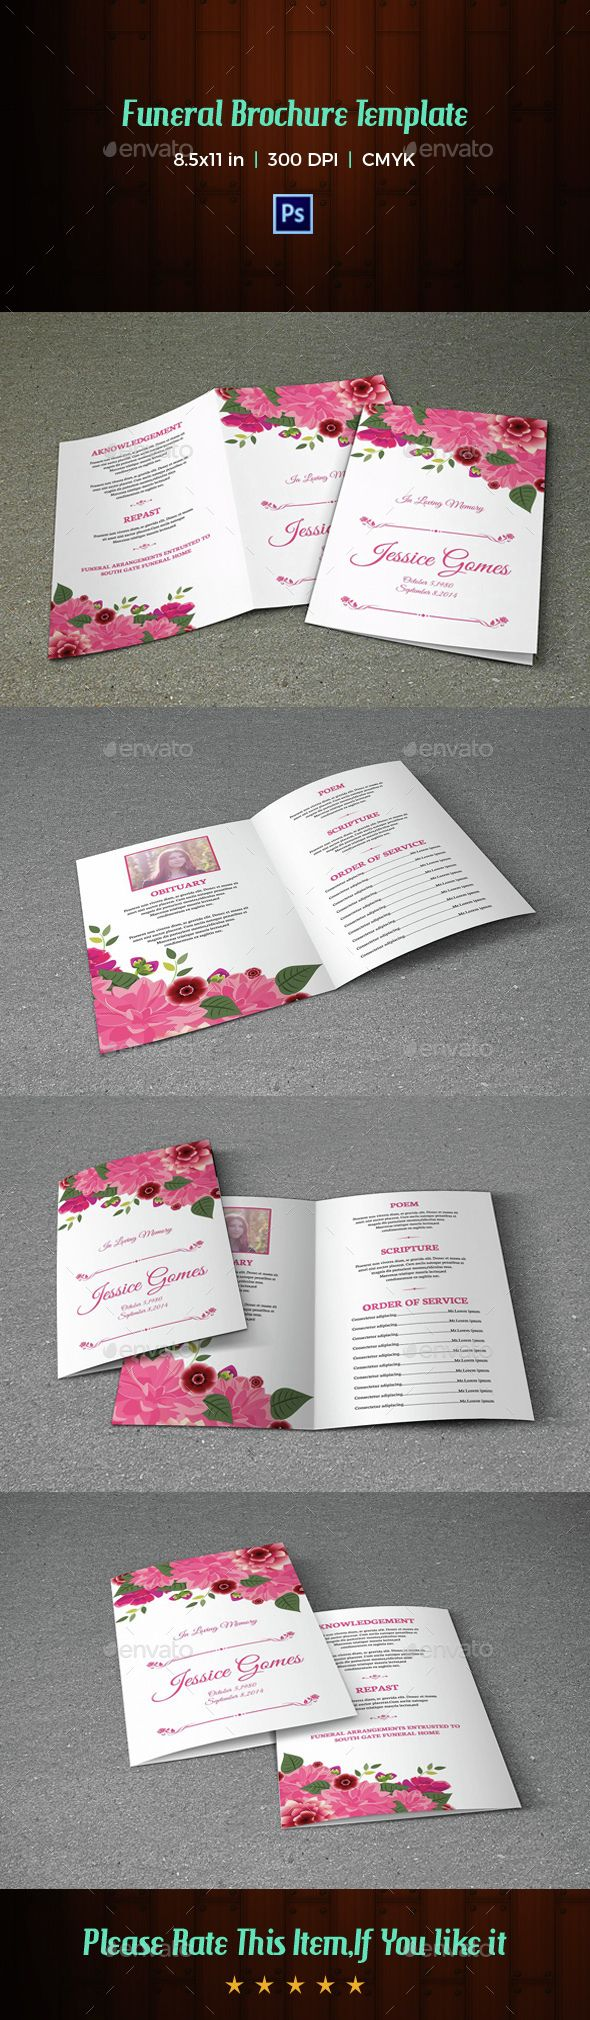 Floral Funeral Program Template-V05 by FuneralTemplates Funeral program Template